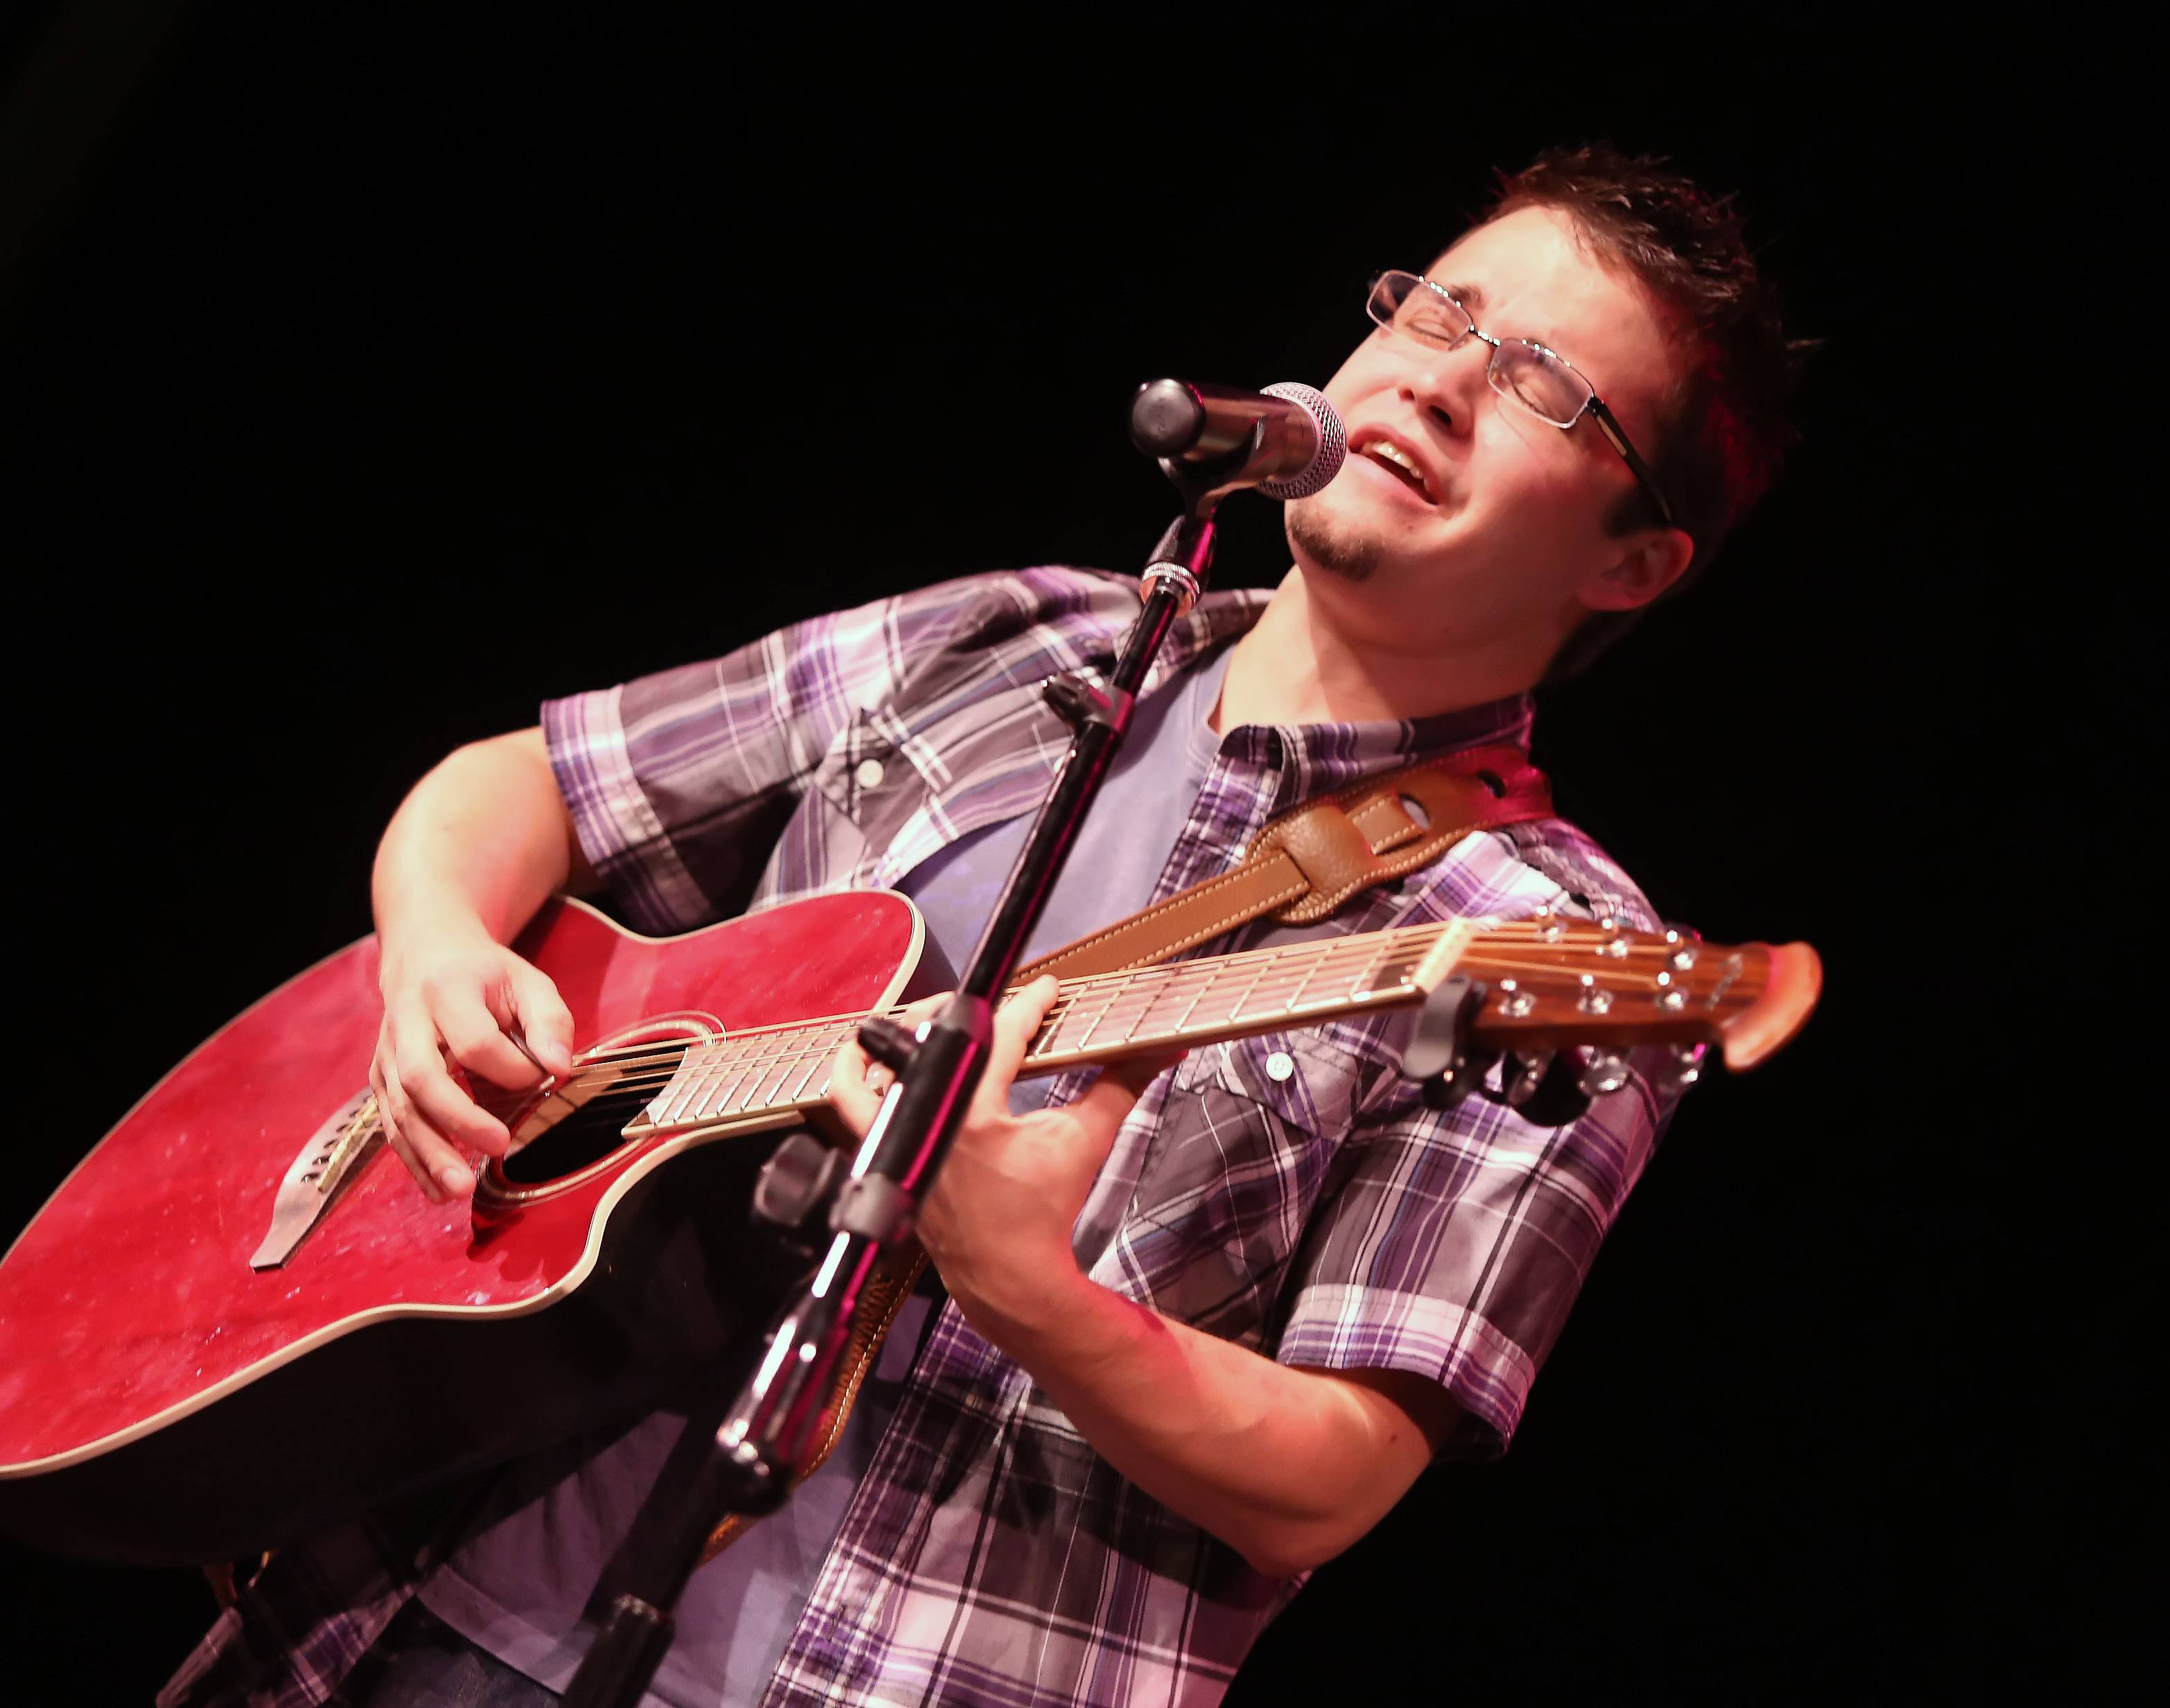 Ryan Cooper of Schaumburg competed in Suburban Chicago's Got Talent in 2013, 2014 and 2015, when he was a co-winner with the band Burke Valley.